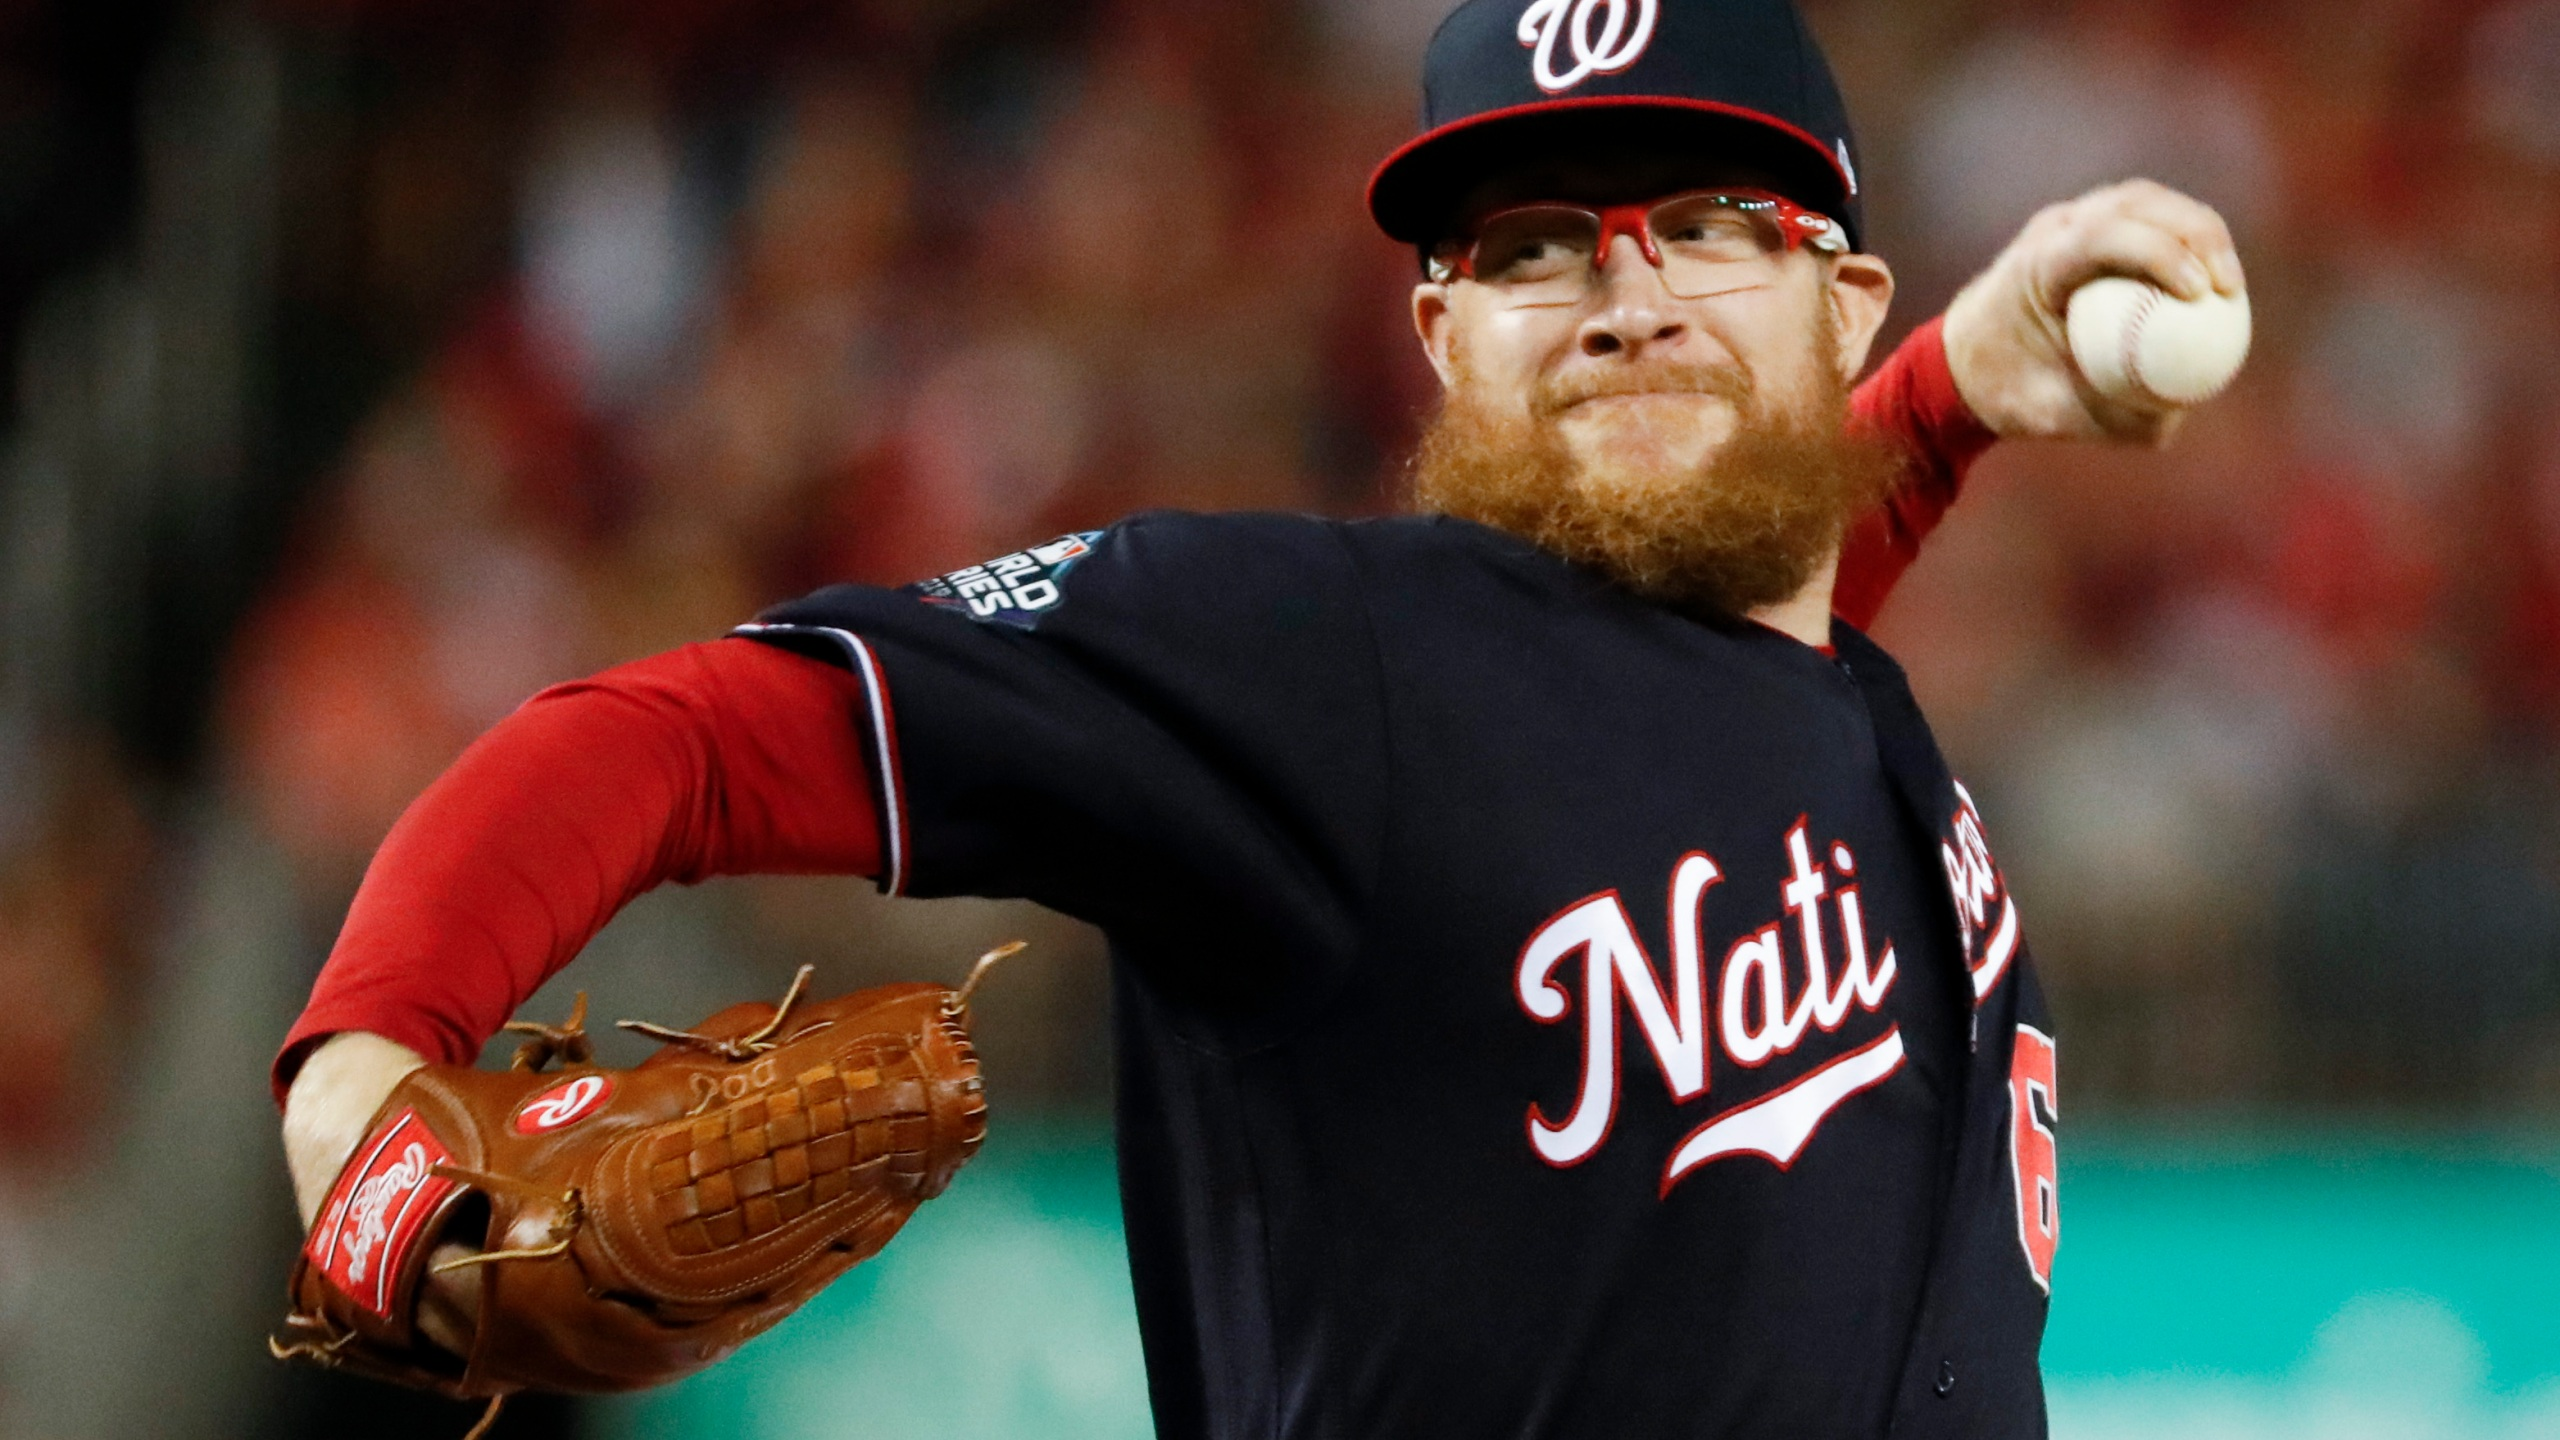 Image result for Nationals World Series Champion Doolittle Declines White House Invite, 'I Just Can't Do It'